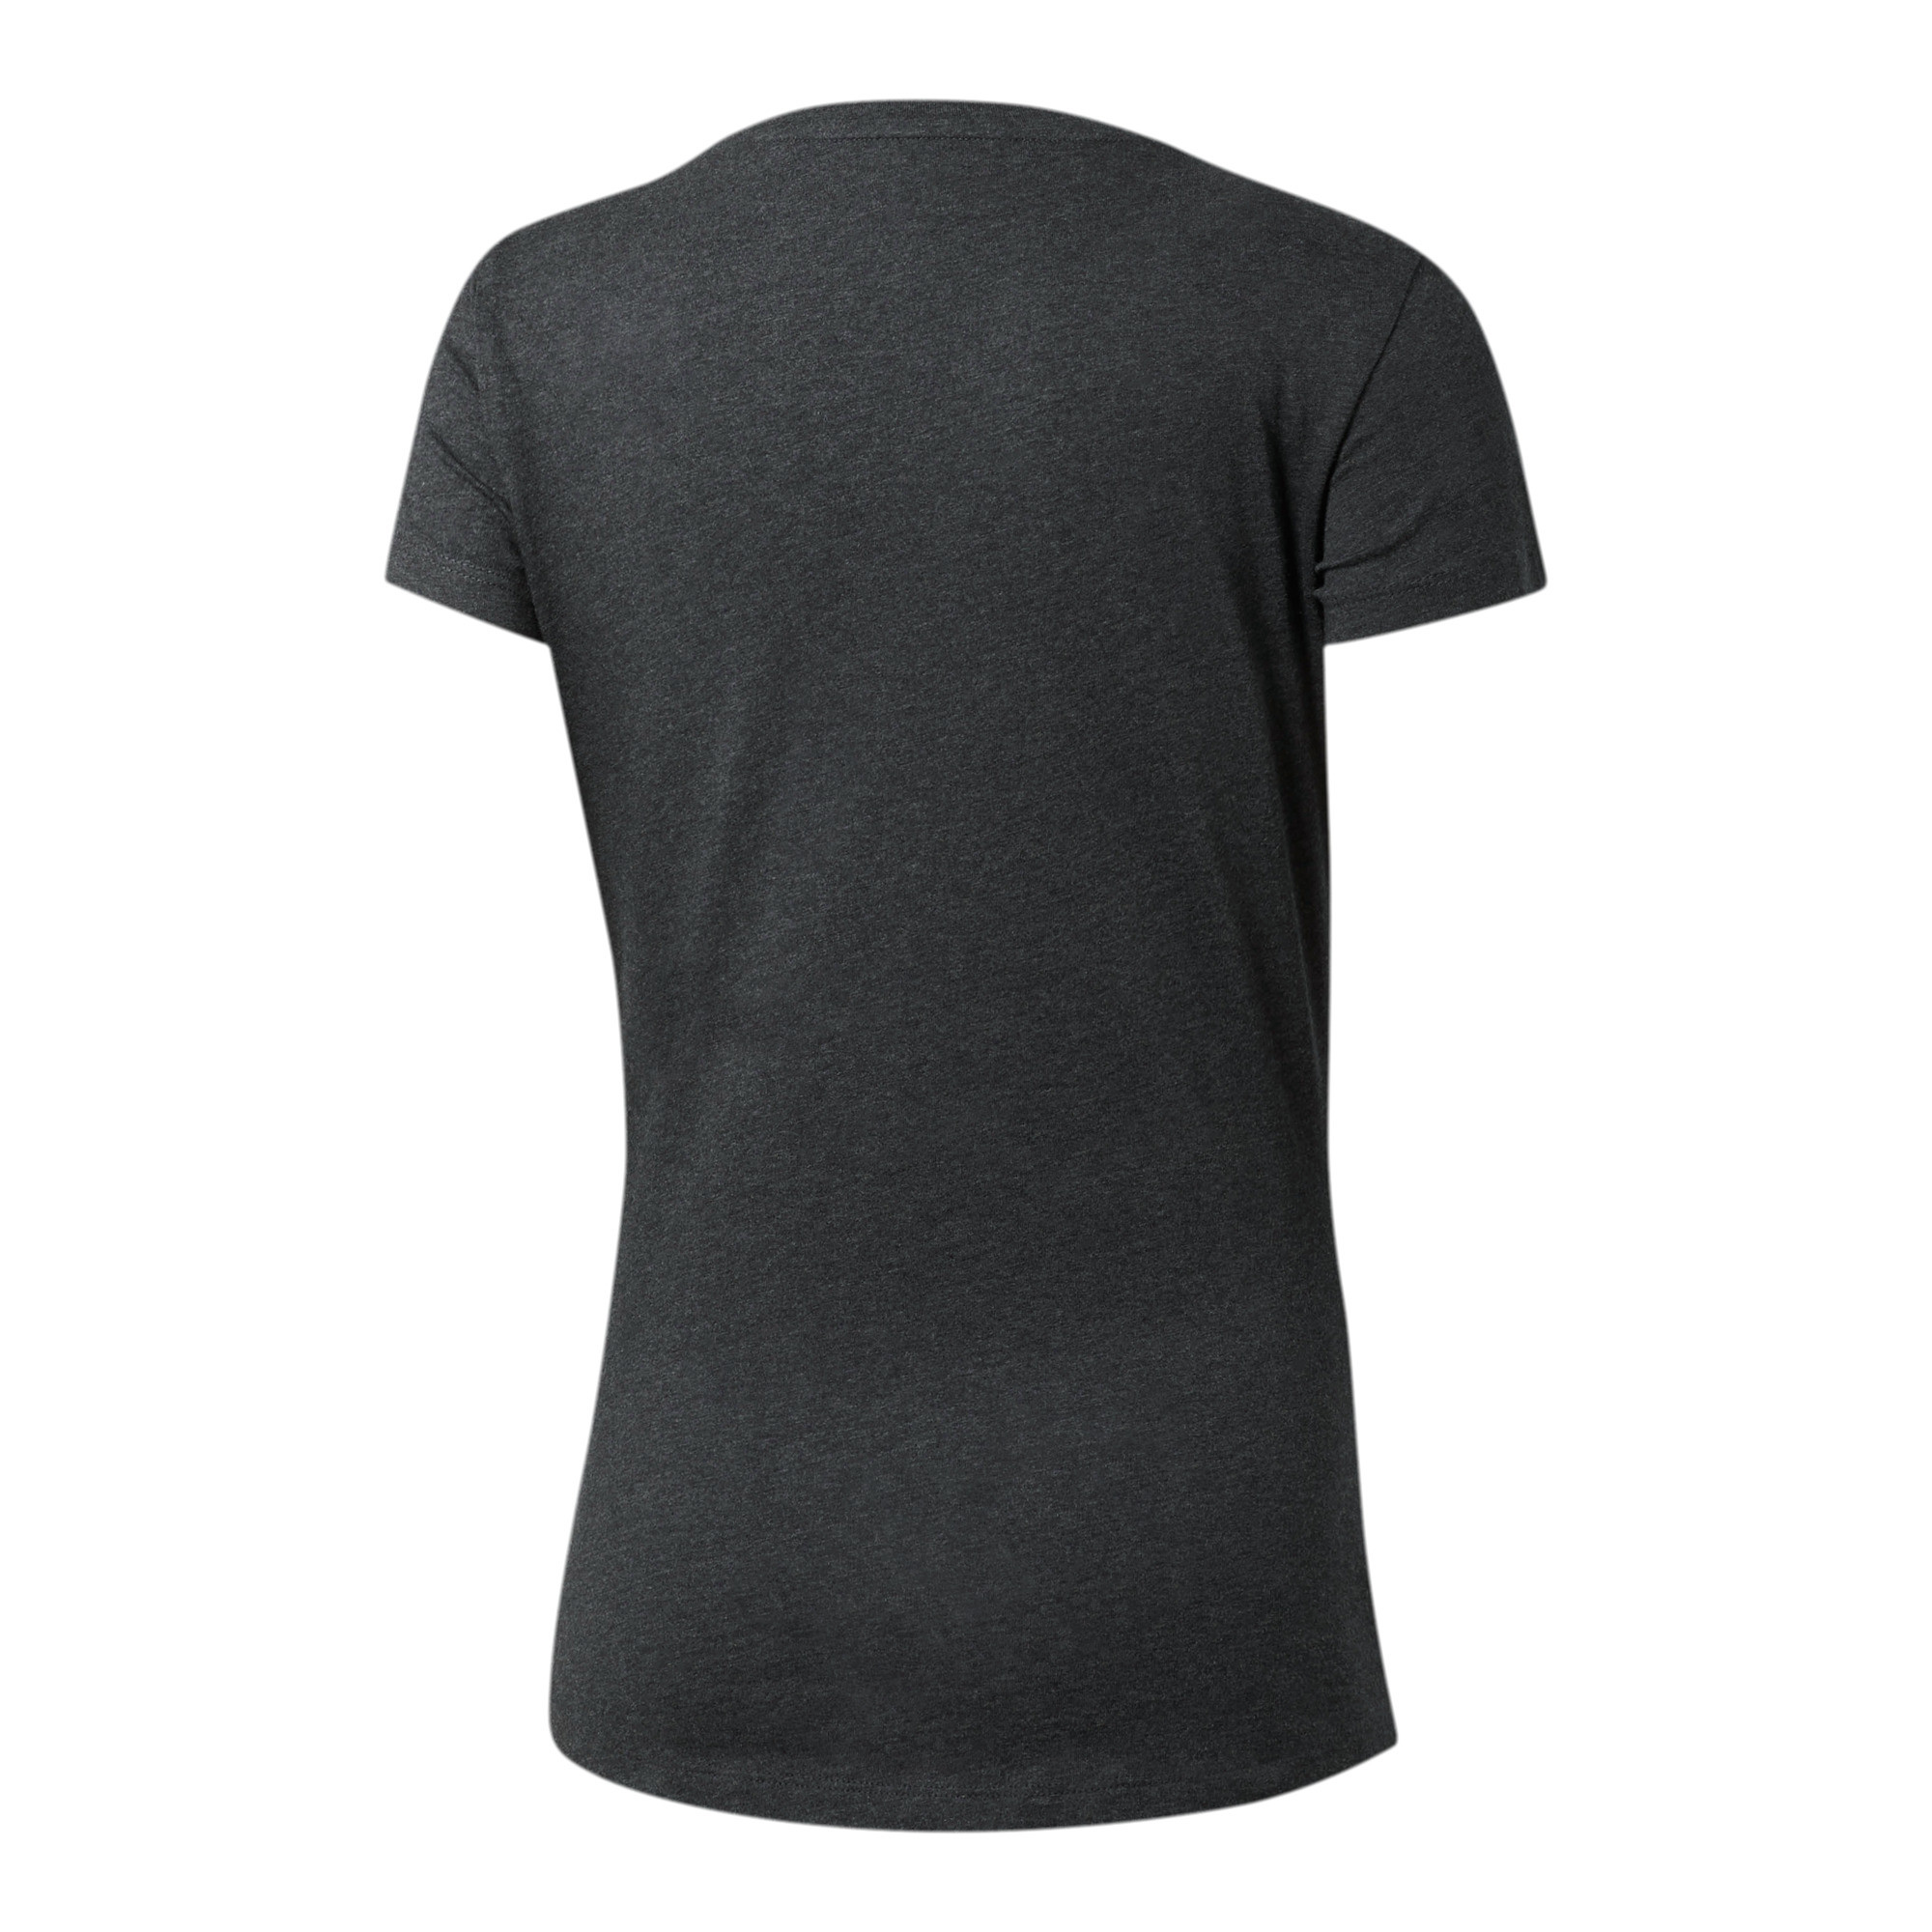 PUMA-Essentials-Women-039-s-Tee-Women-Tee-Basics thumbnail 6